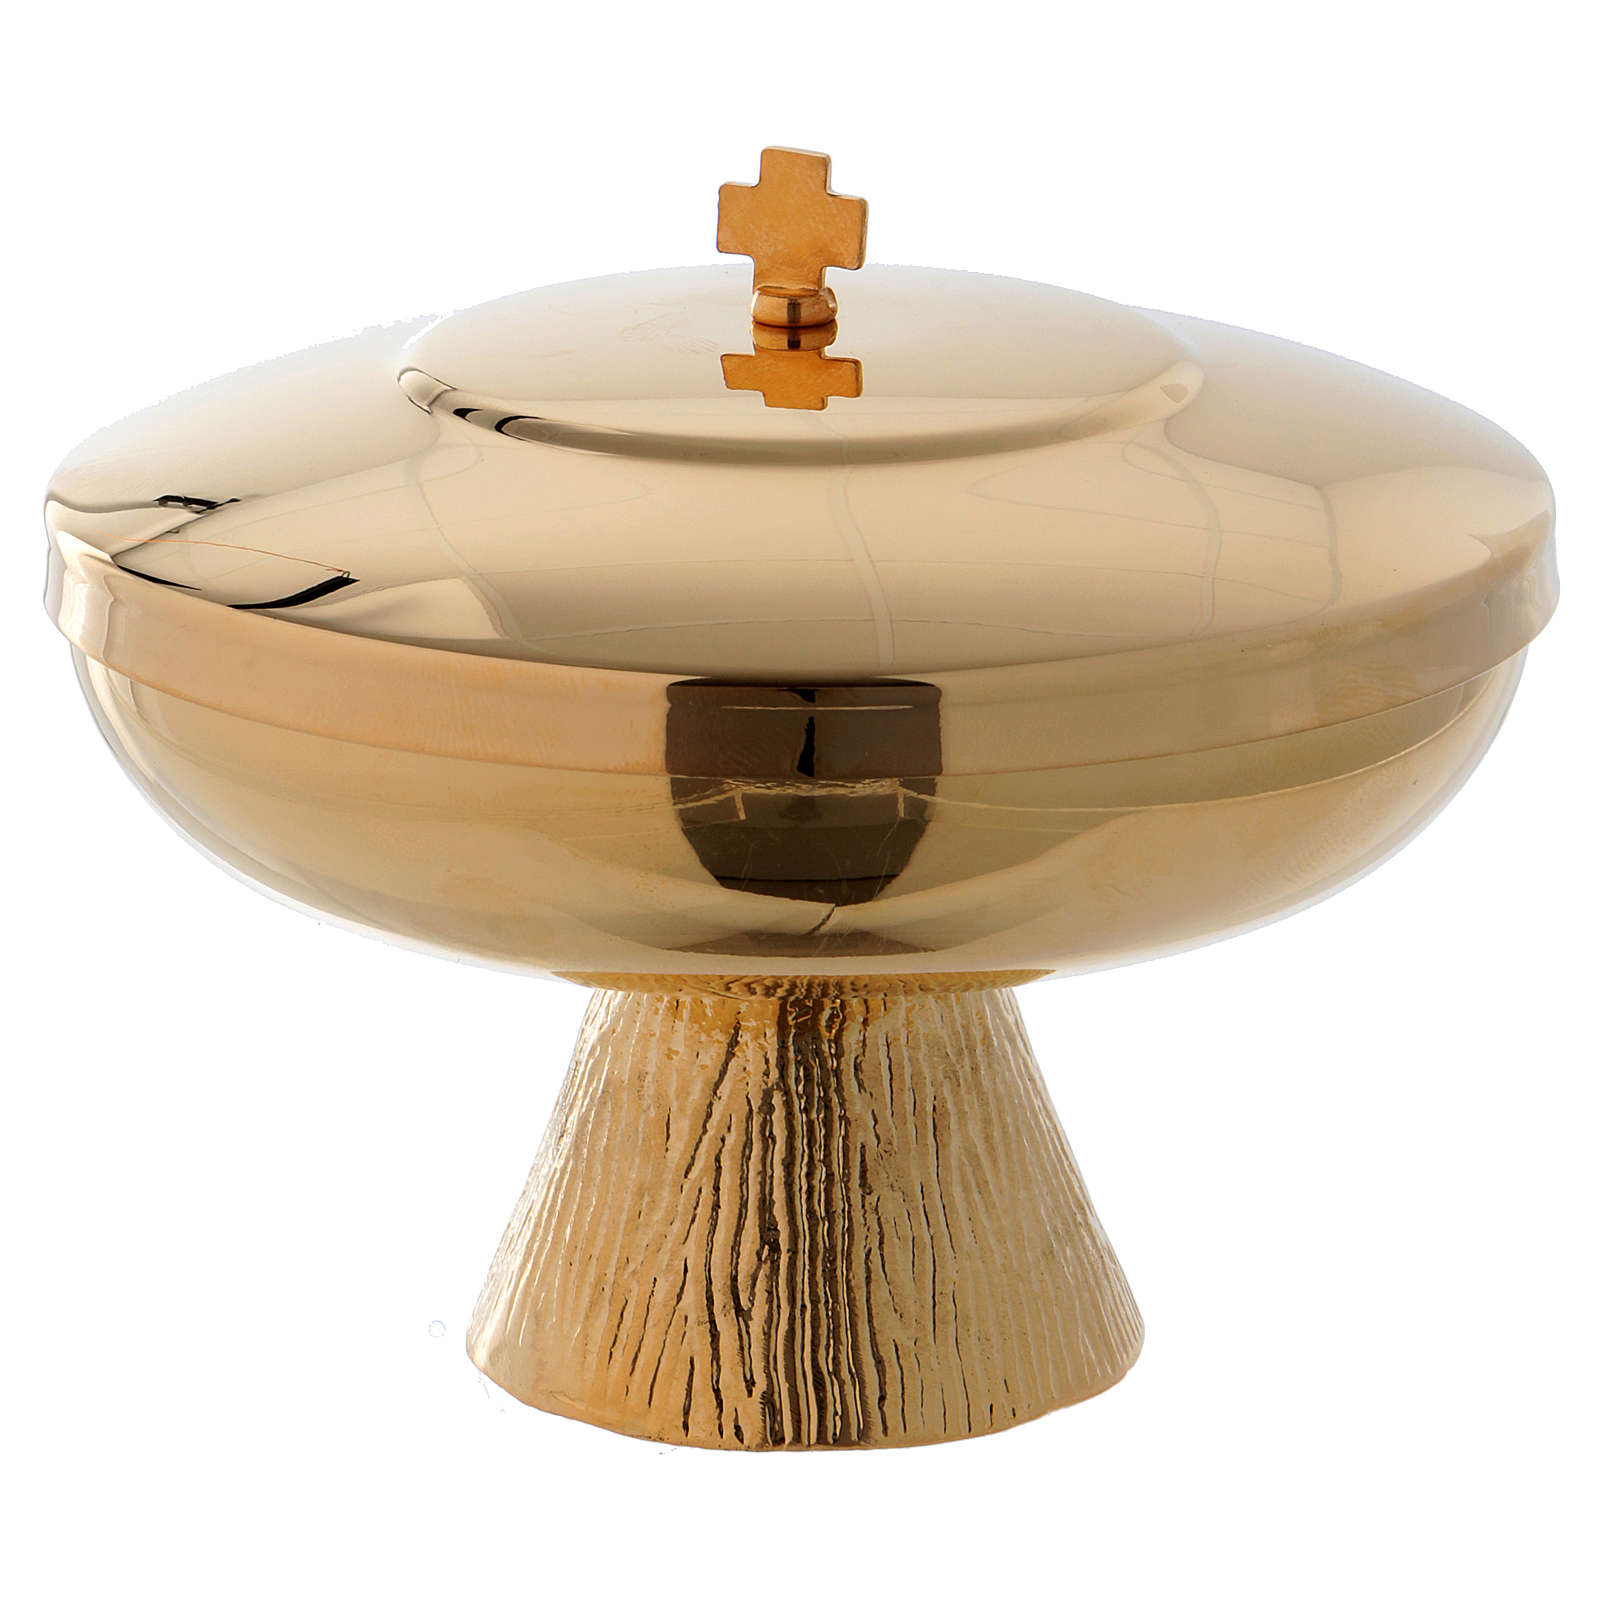 Communion bowl with cover gold-plated brass 4 inches 4